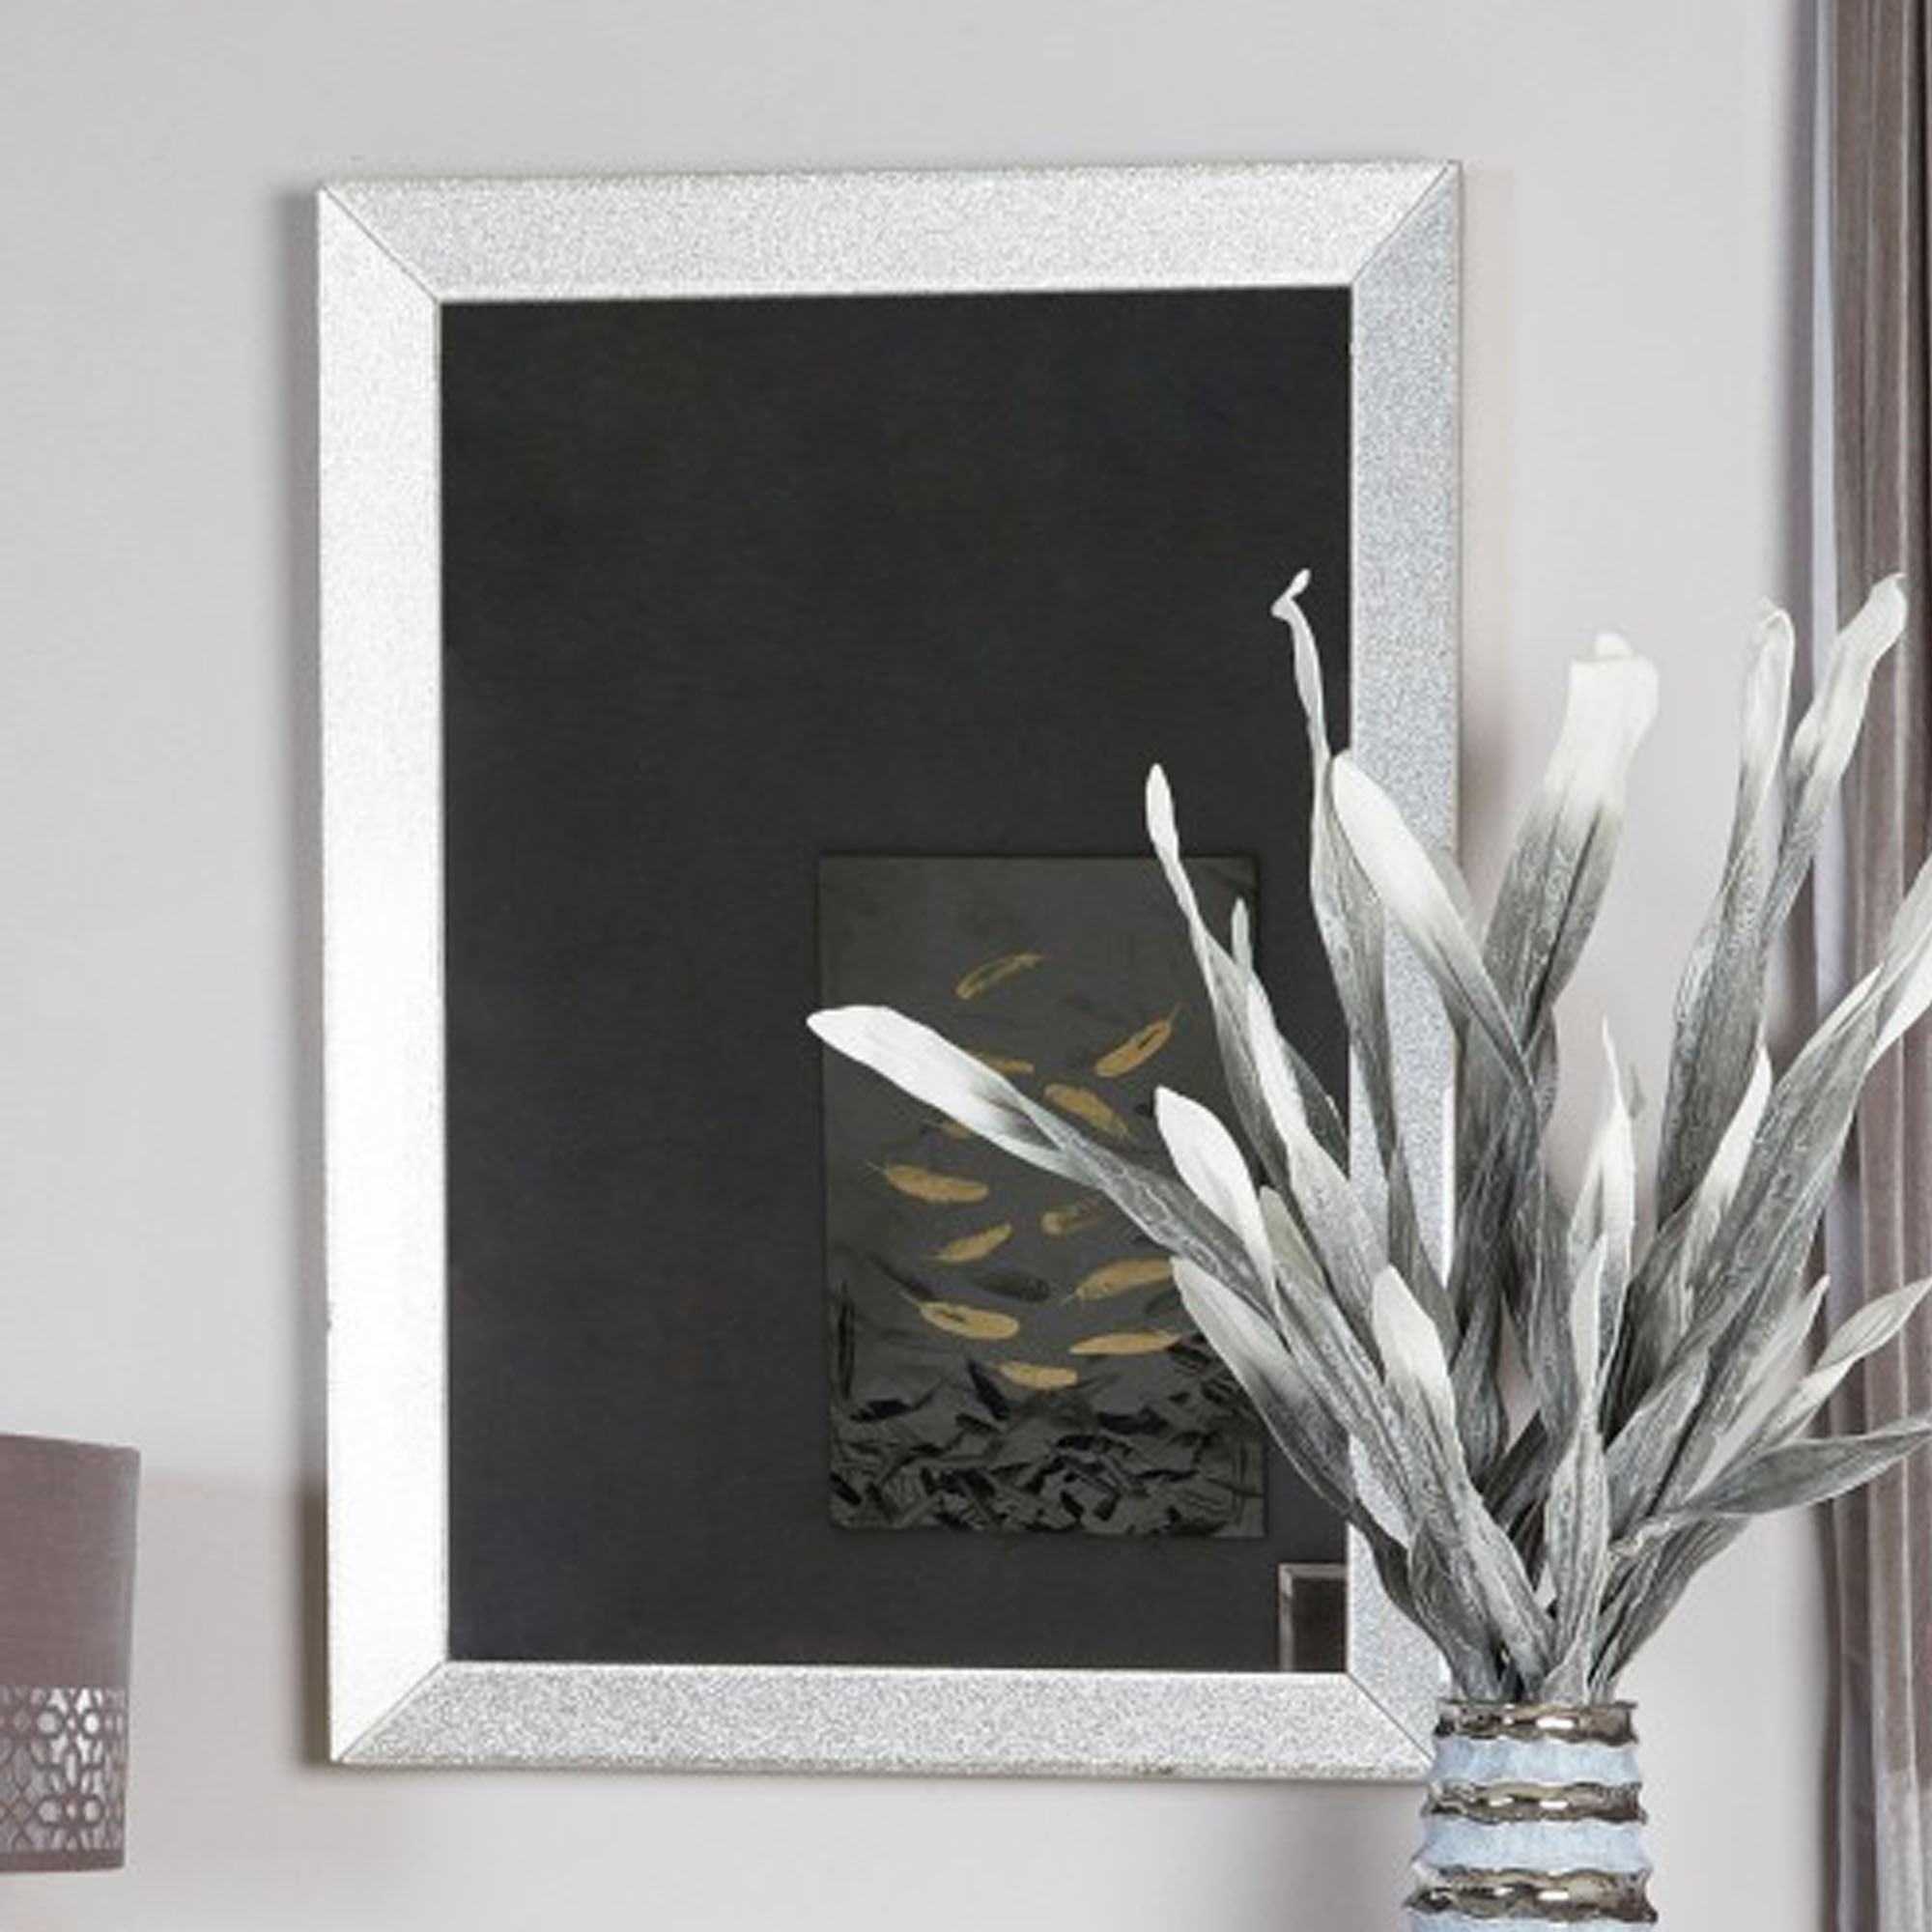 Well Known Champagne Sparkle Wall Mirror Throughout Sparkle Wall Mirrors (View 11 of 20)